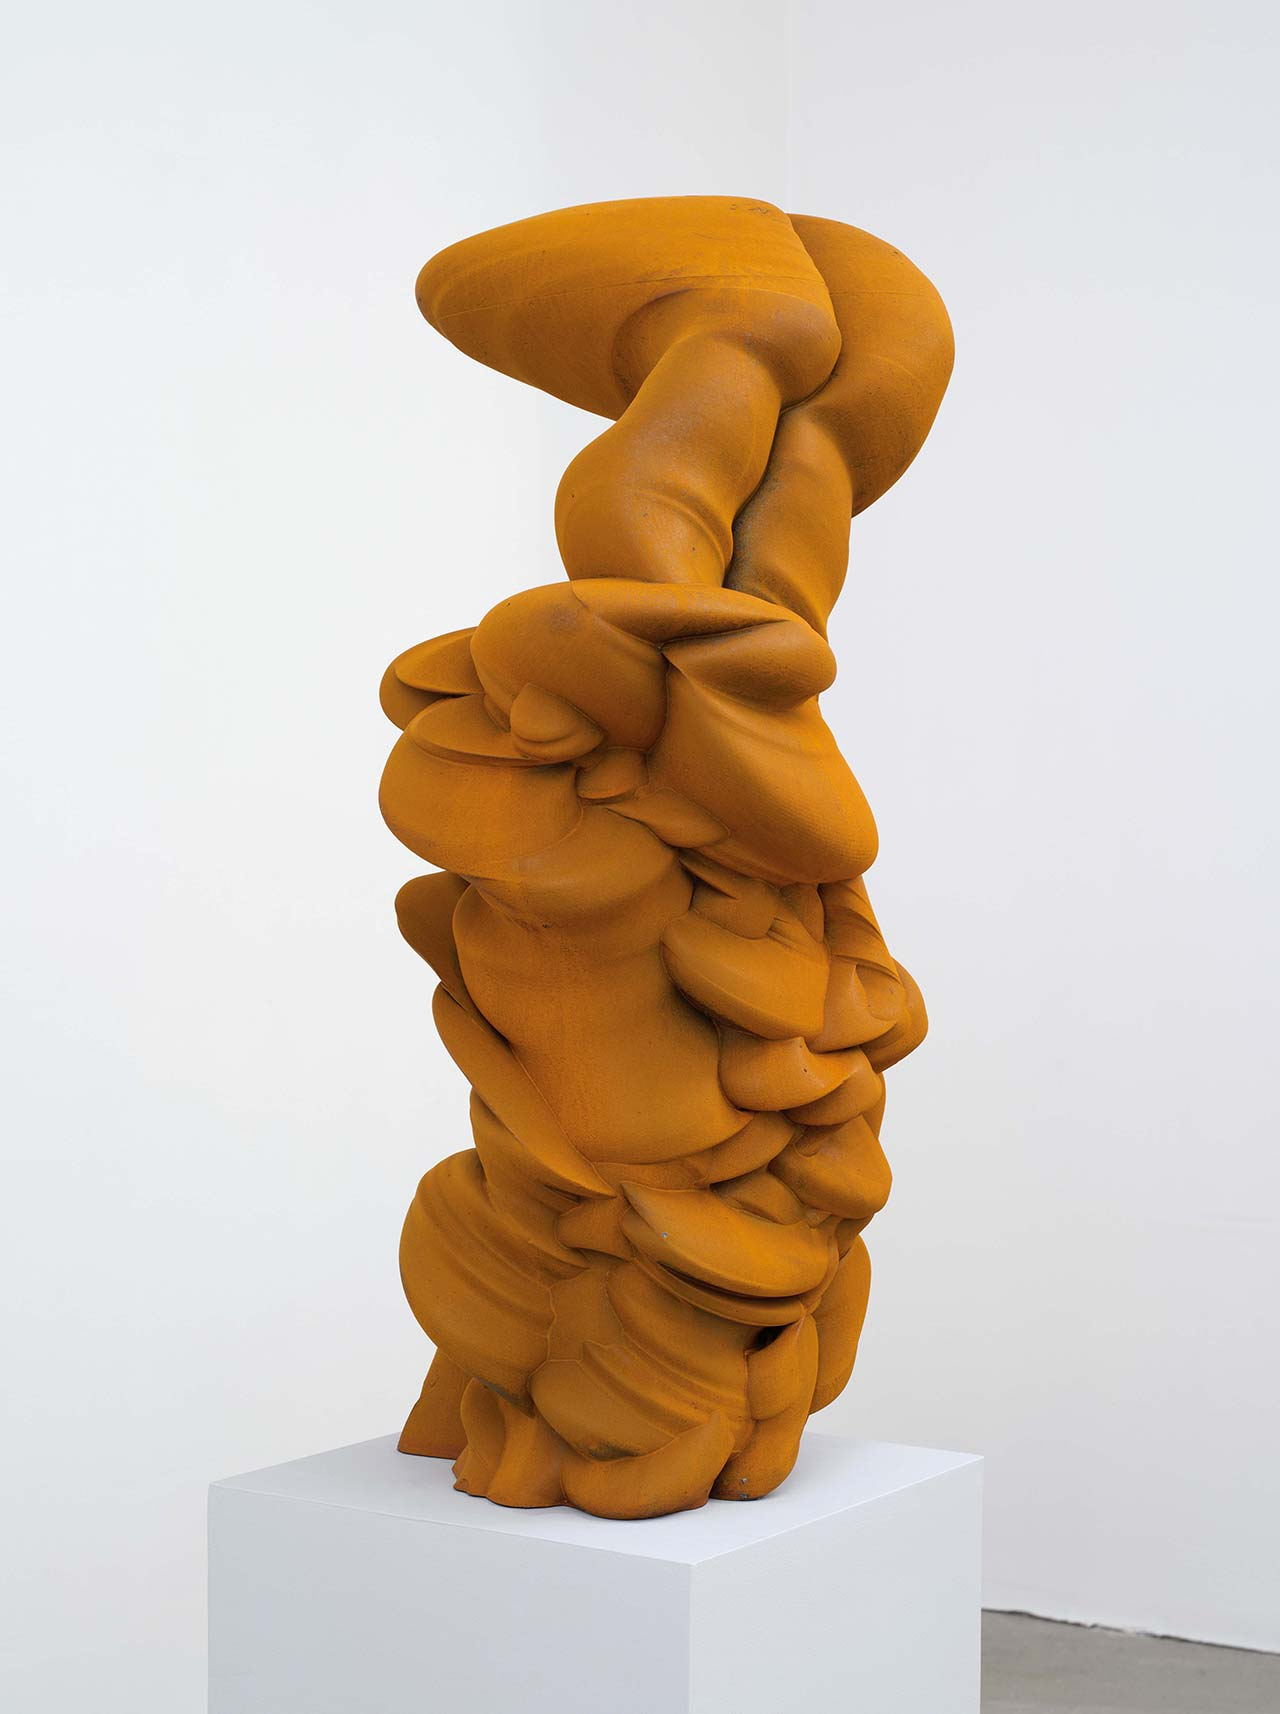 Tony Cragg, False Idols. Photo by John Berens. © VG Bild-Kunst Bonn 2016.